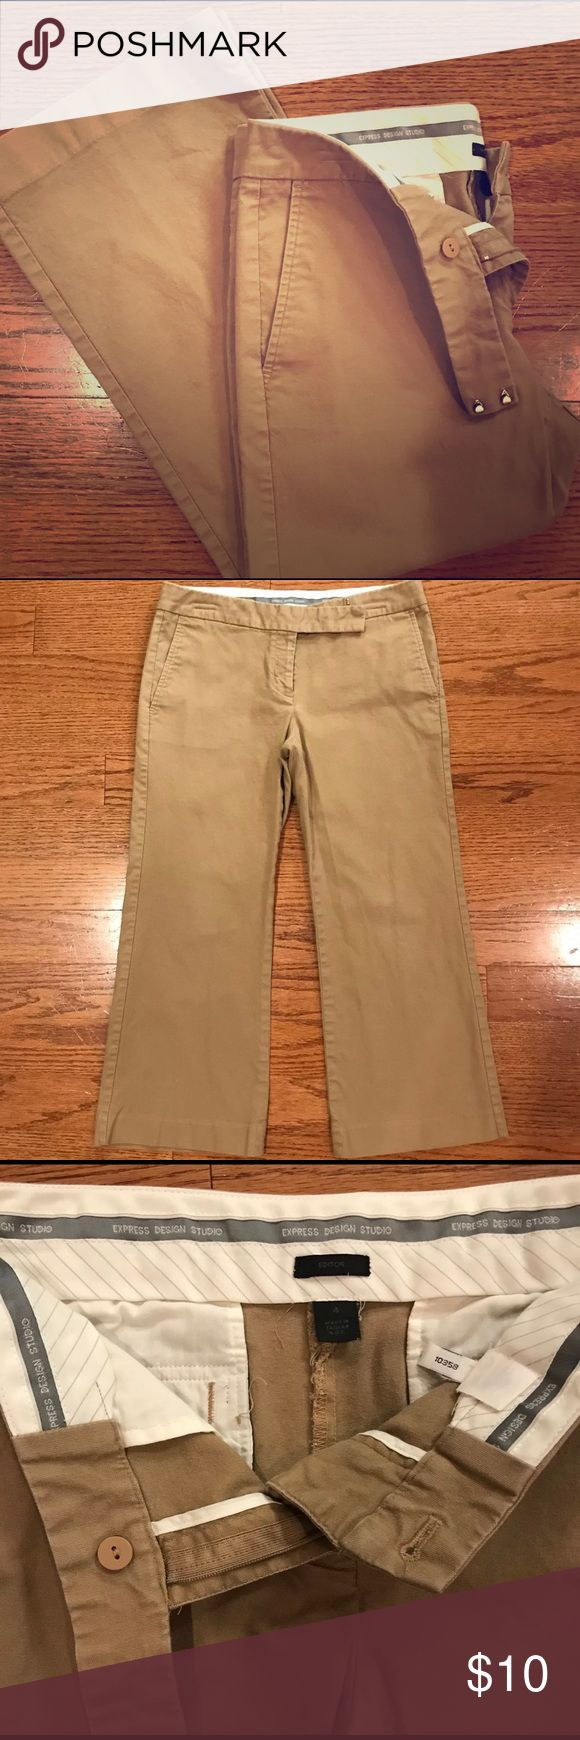 Express Design Studio Cropped Khaki Capris Express Design Studio  Size 4  Great condition  No signs of tears, stains, snags  Perfect for casual days or dressy it up Express Pants Capris